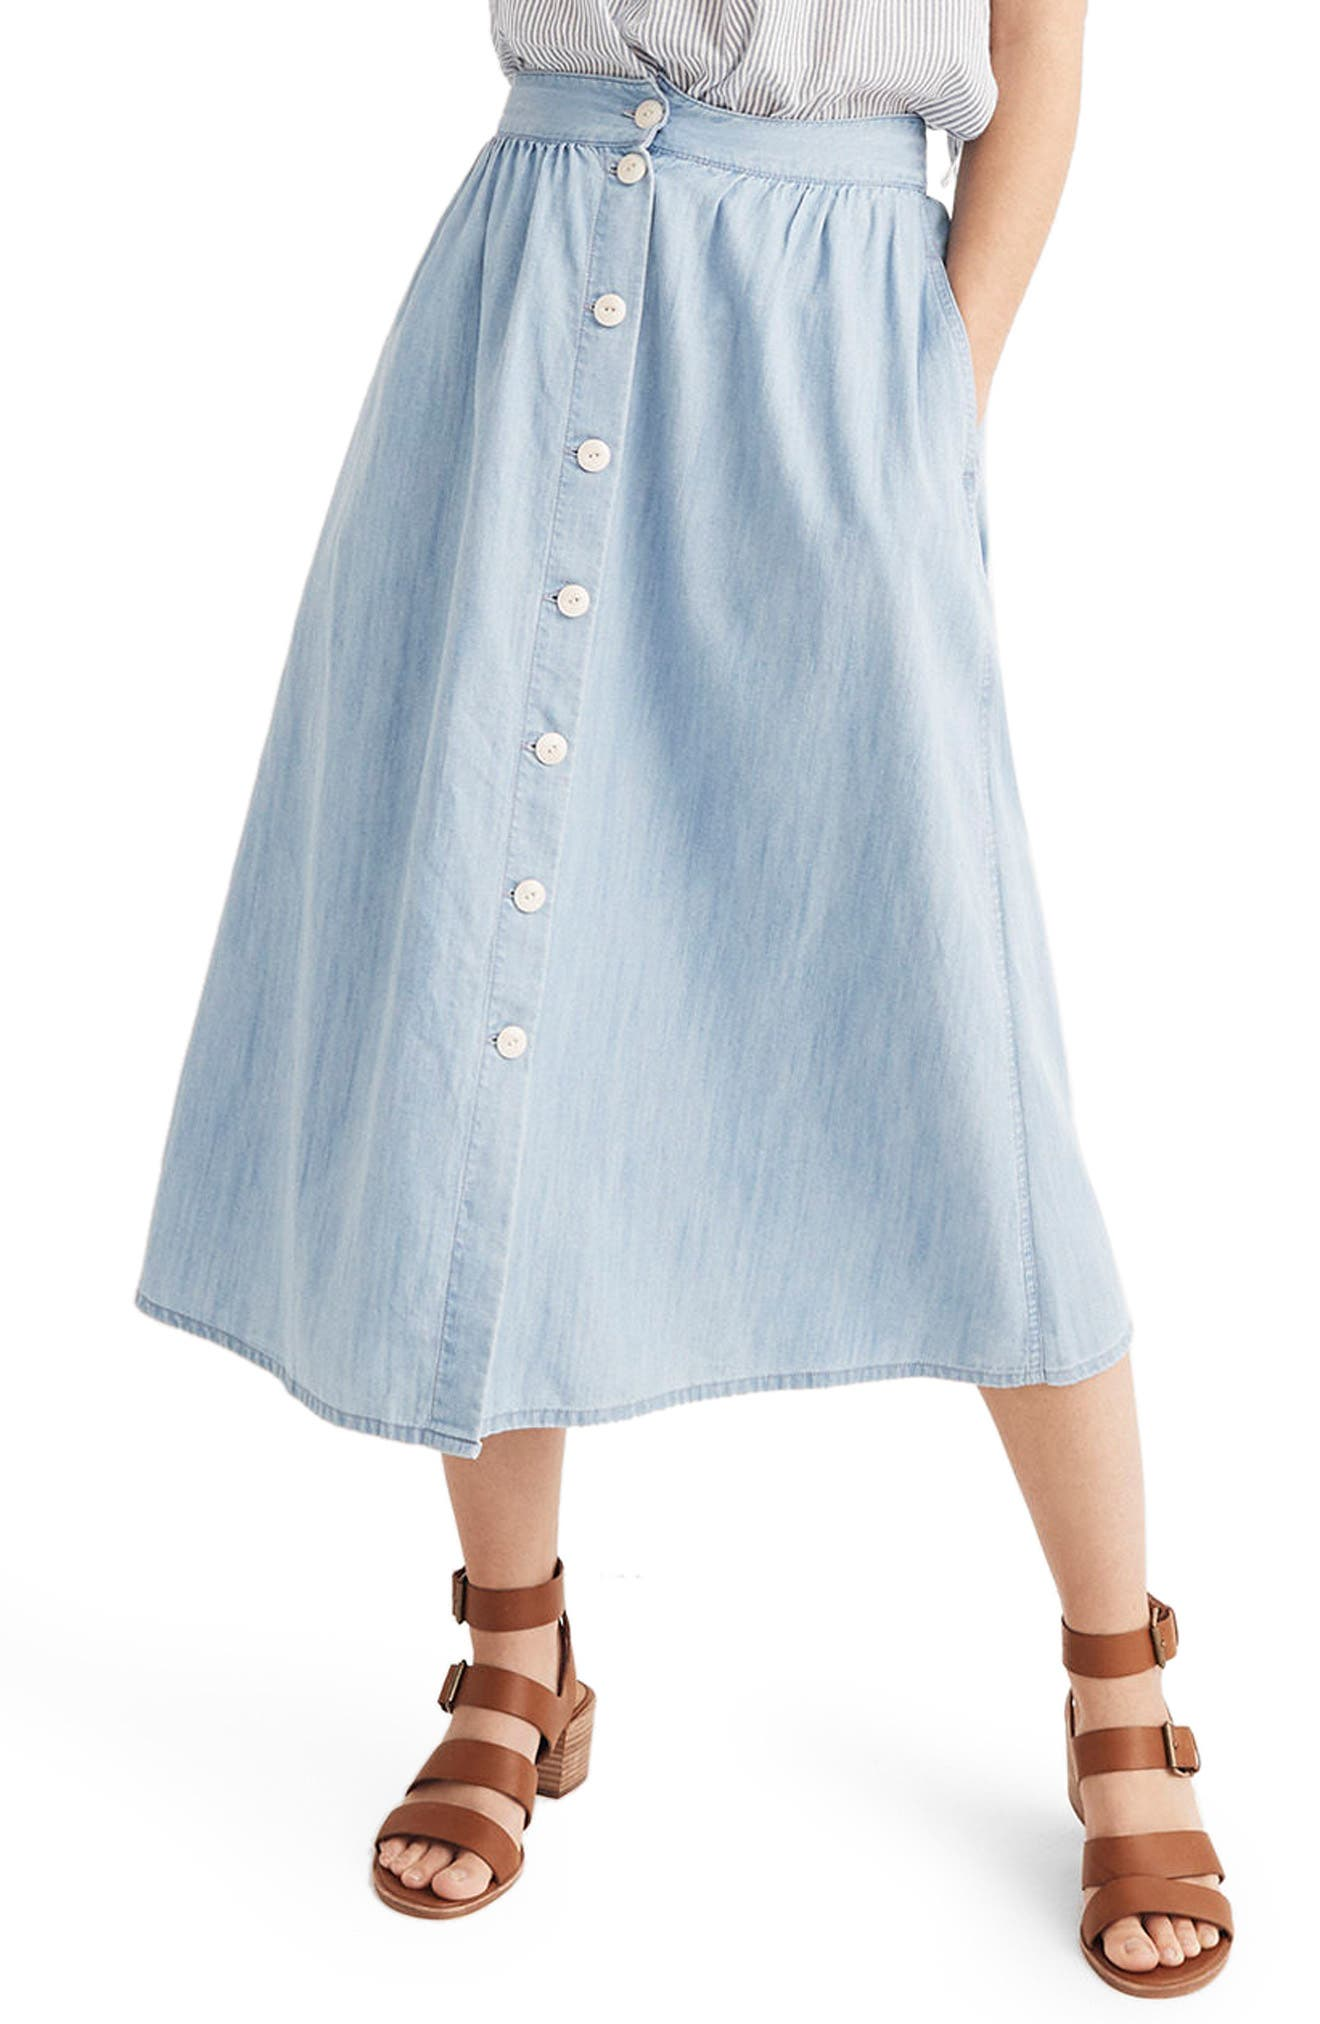 Button Front Midi Skirt,                             Main thumbnail 1, color,                             Altamira Wash